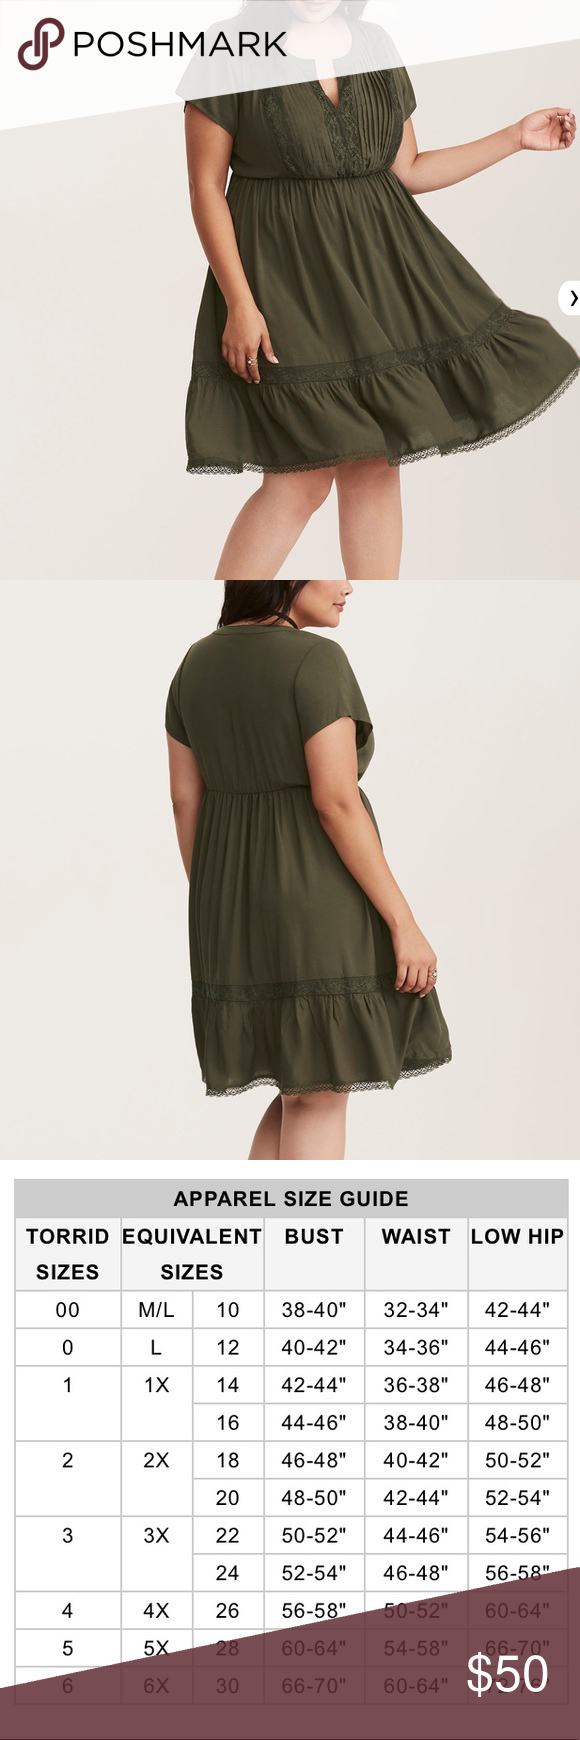 f1d4c56cb9 Torrid Dress Challis Lace Inset Dress Olive Green Lace insets trimming the  neck and skirt Pleated Bodice Notch Neck Short Sleeves Stretch Waist No  closure ...